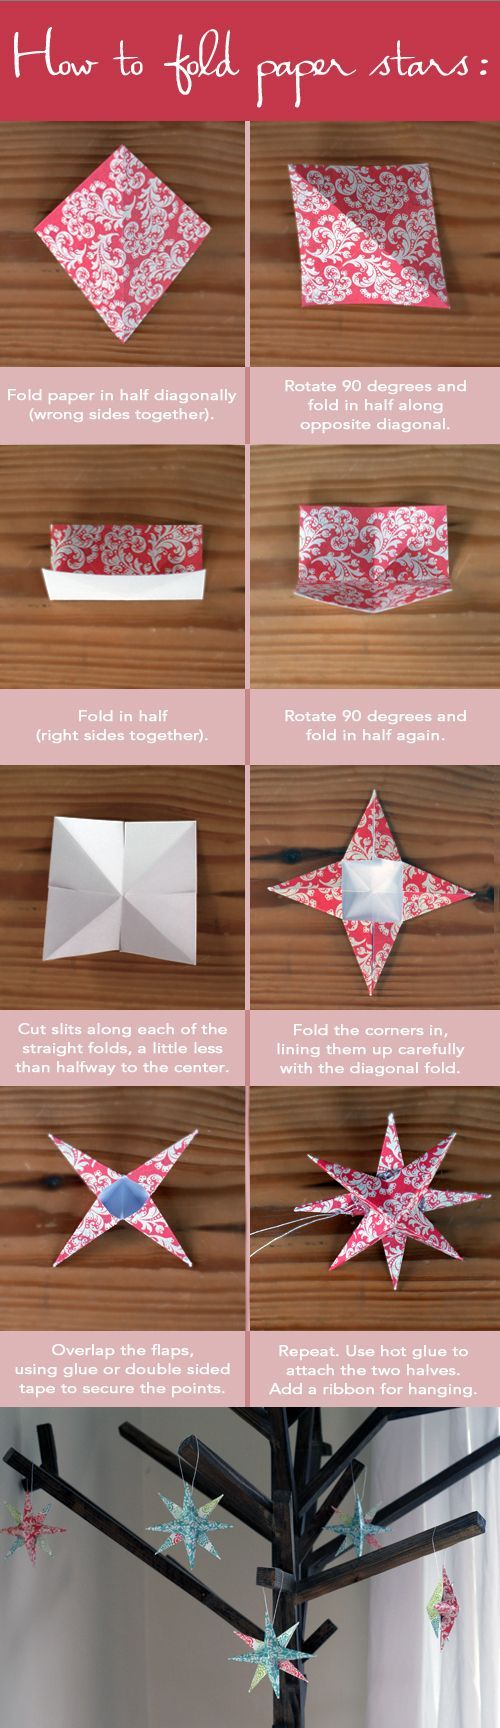 How to Fold Paper Stars...a simple DIY craft tutorial for Christmas! Decorate your own tree with these star ornaments, or give them as gifts!